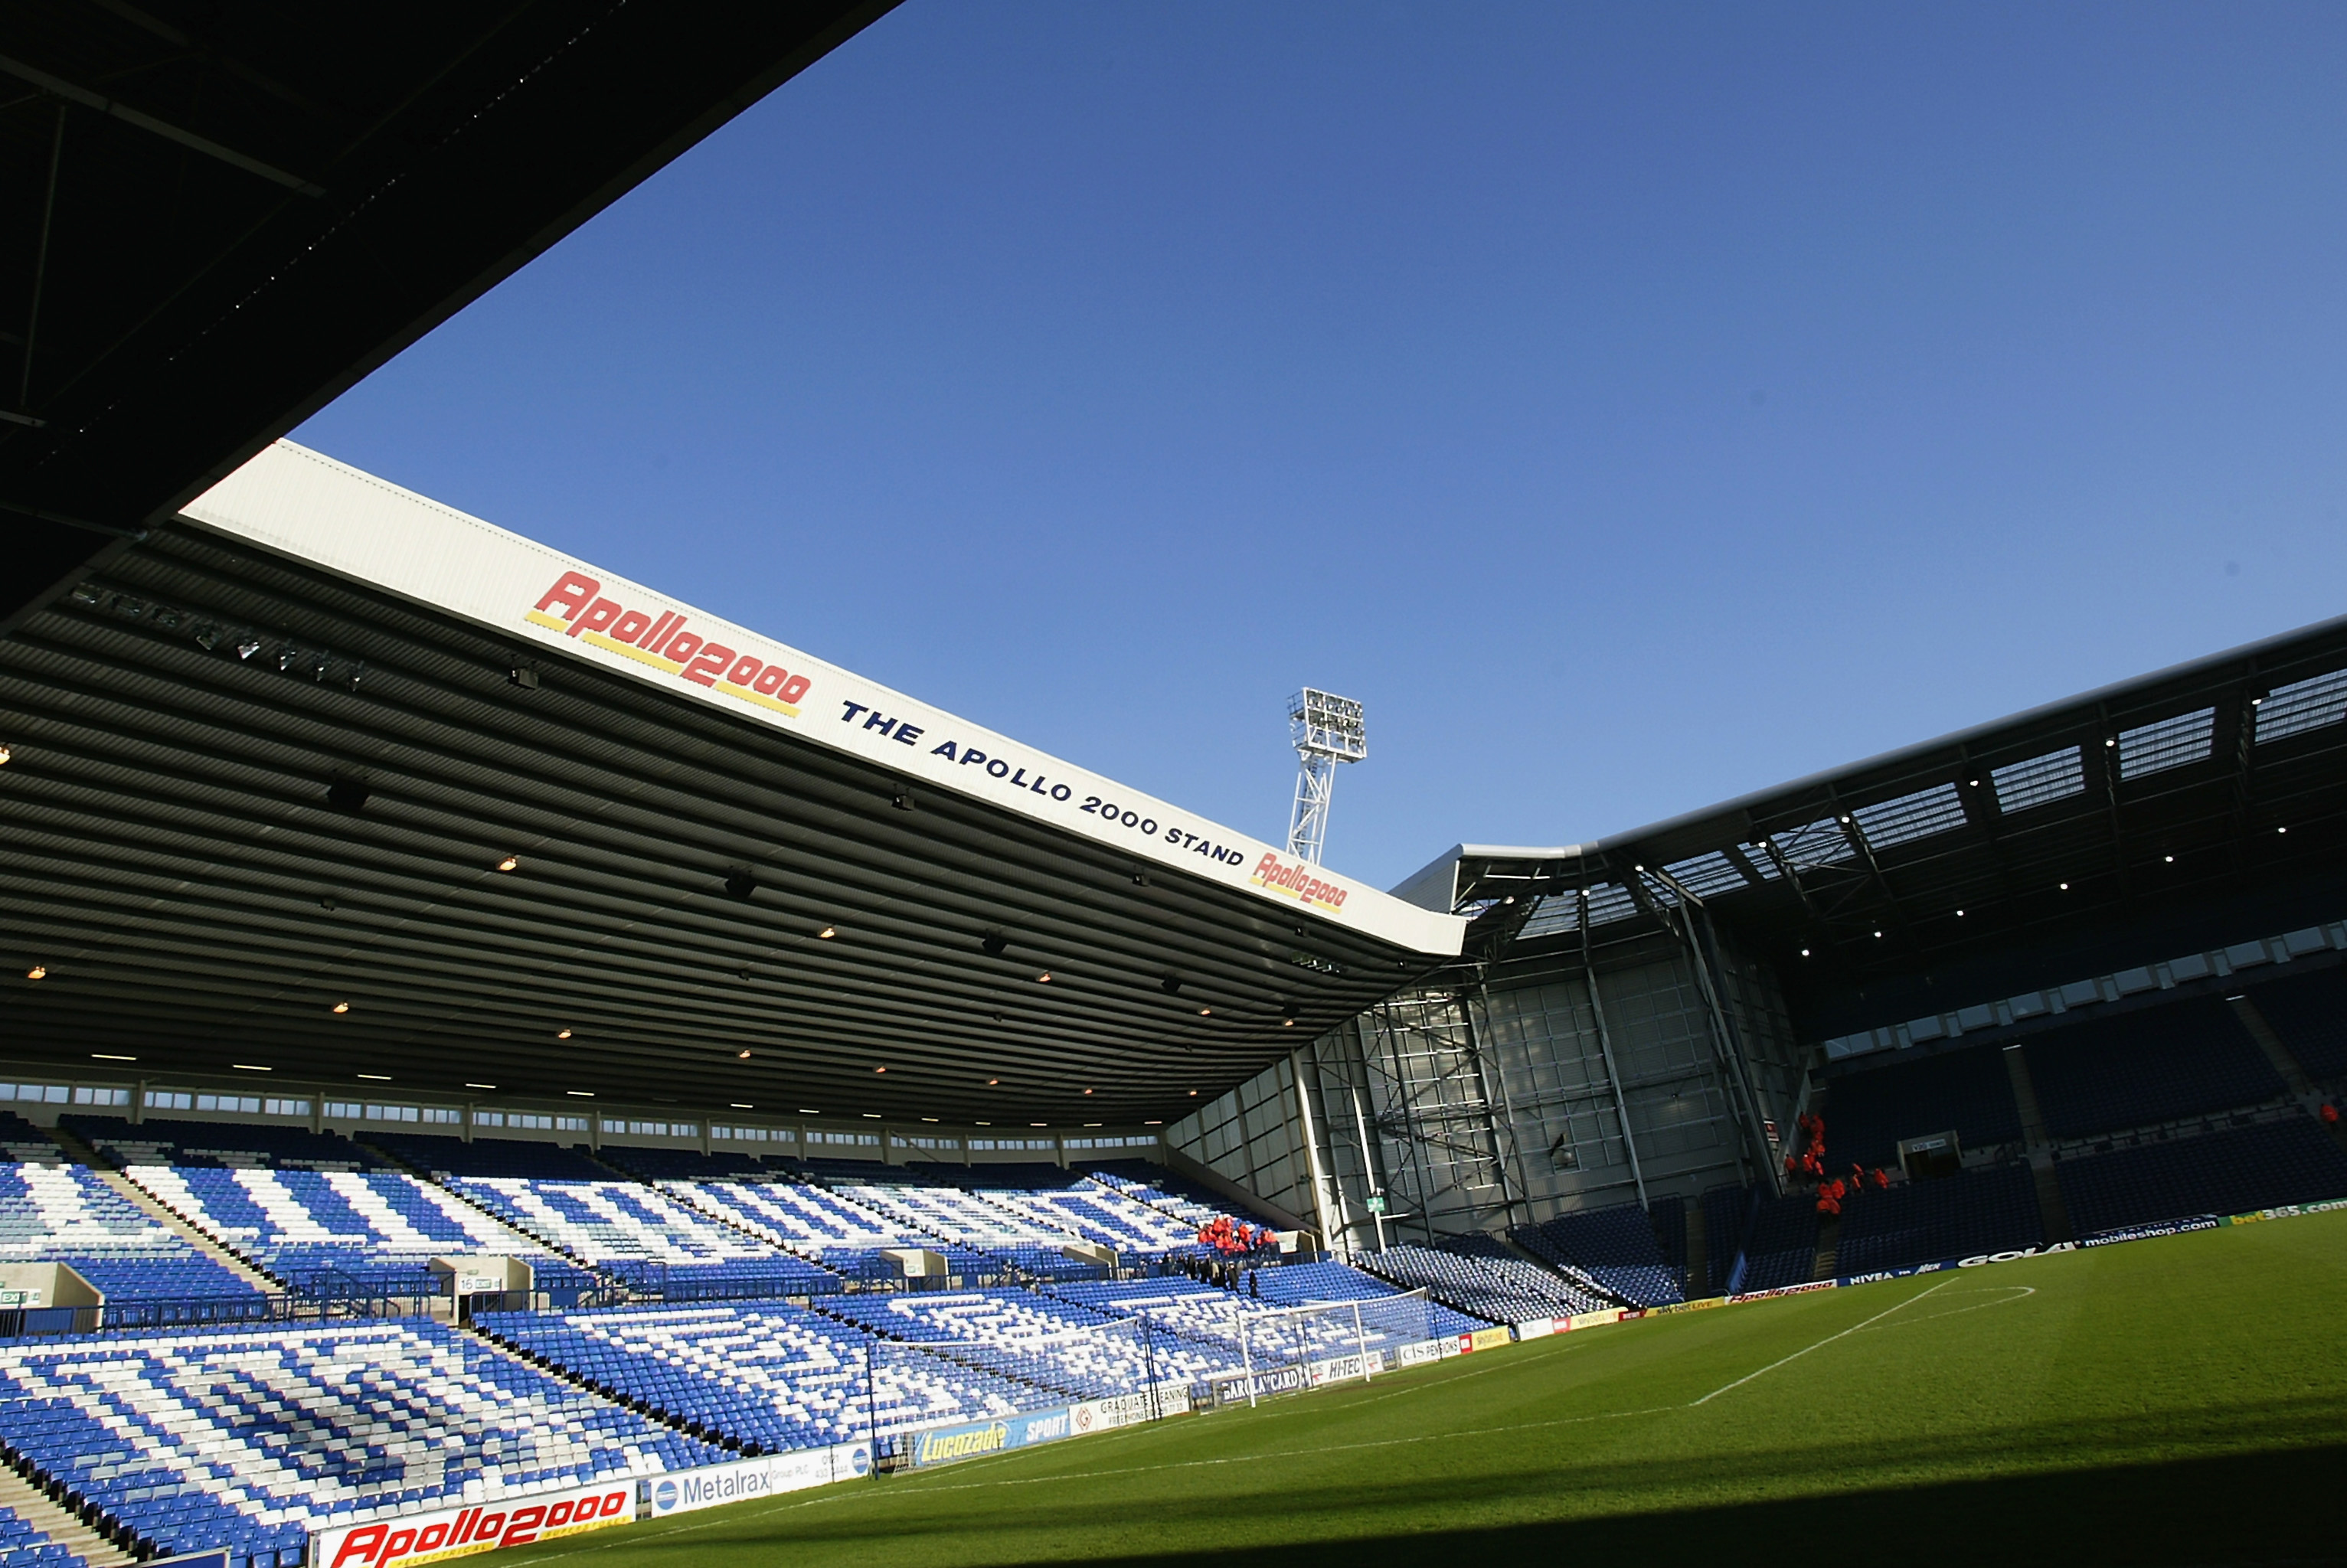 General view of The Hawthorns, home of West Bromwich Albion Football Club